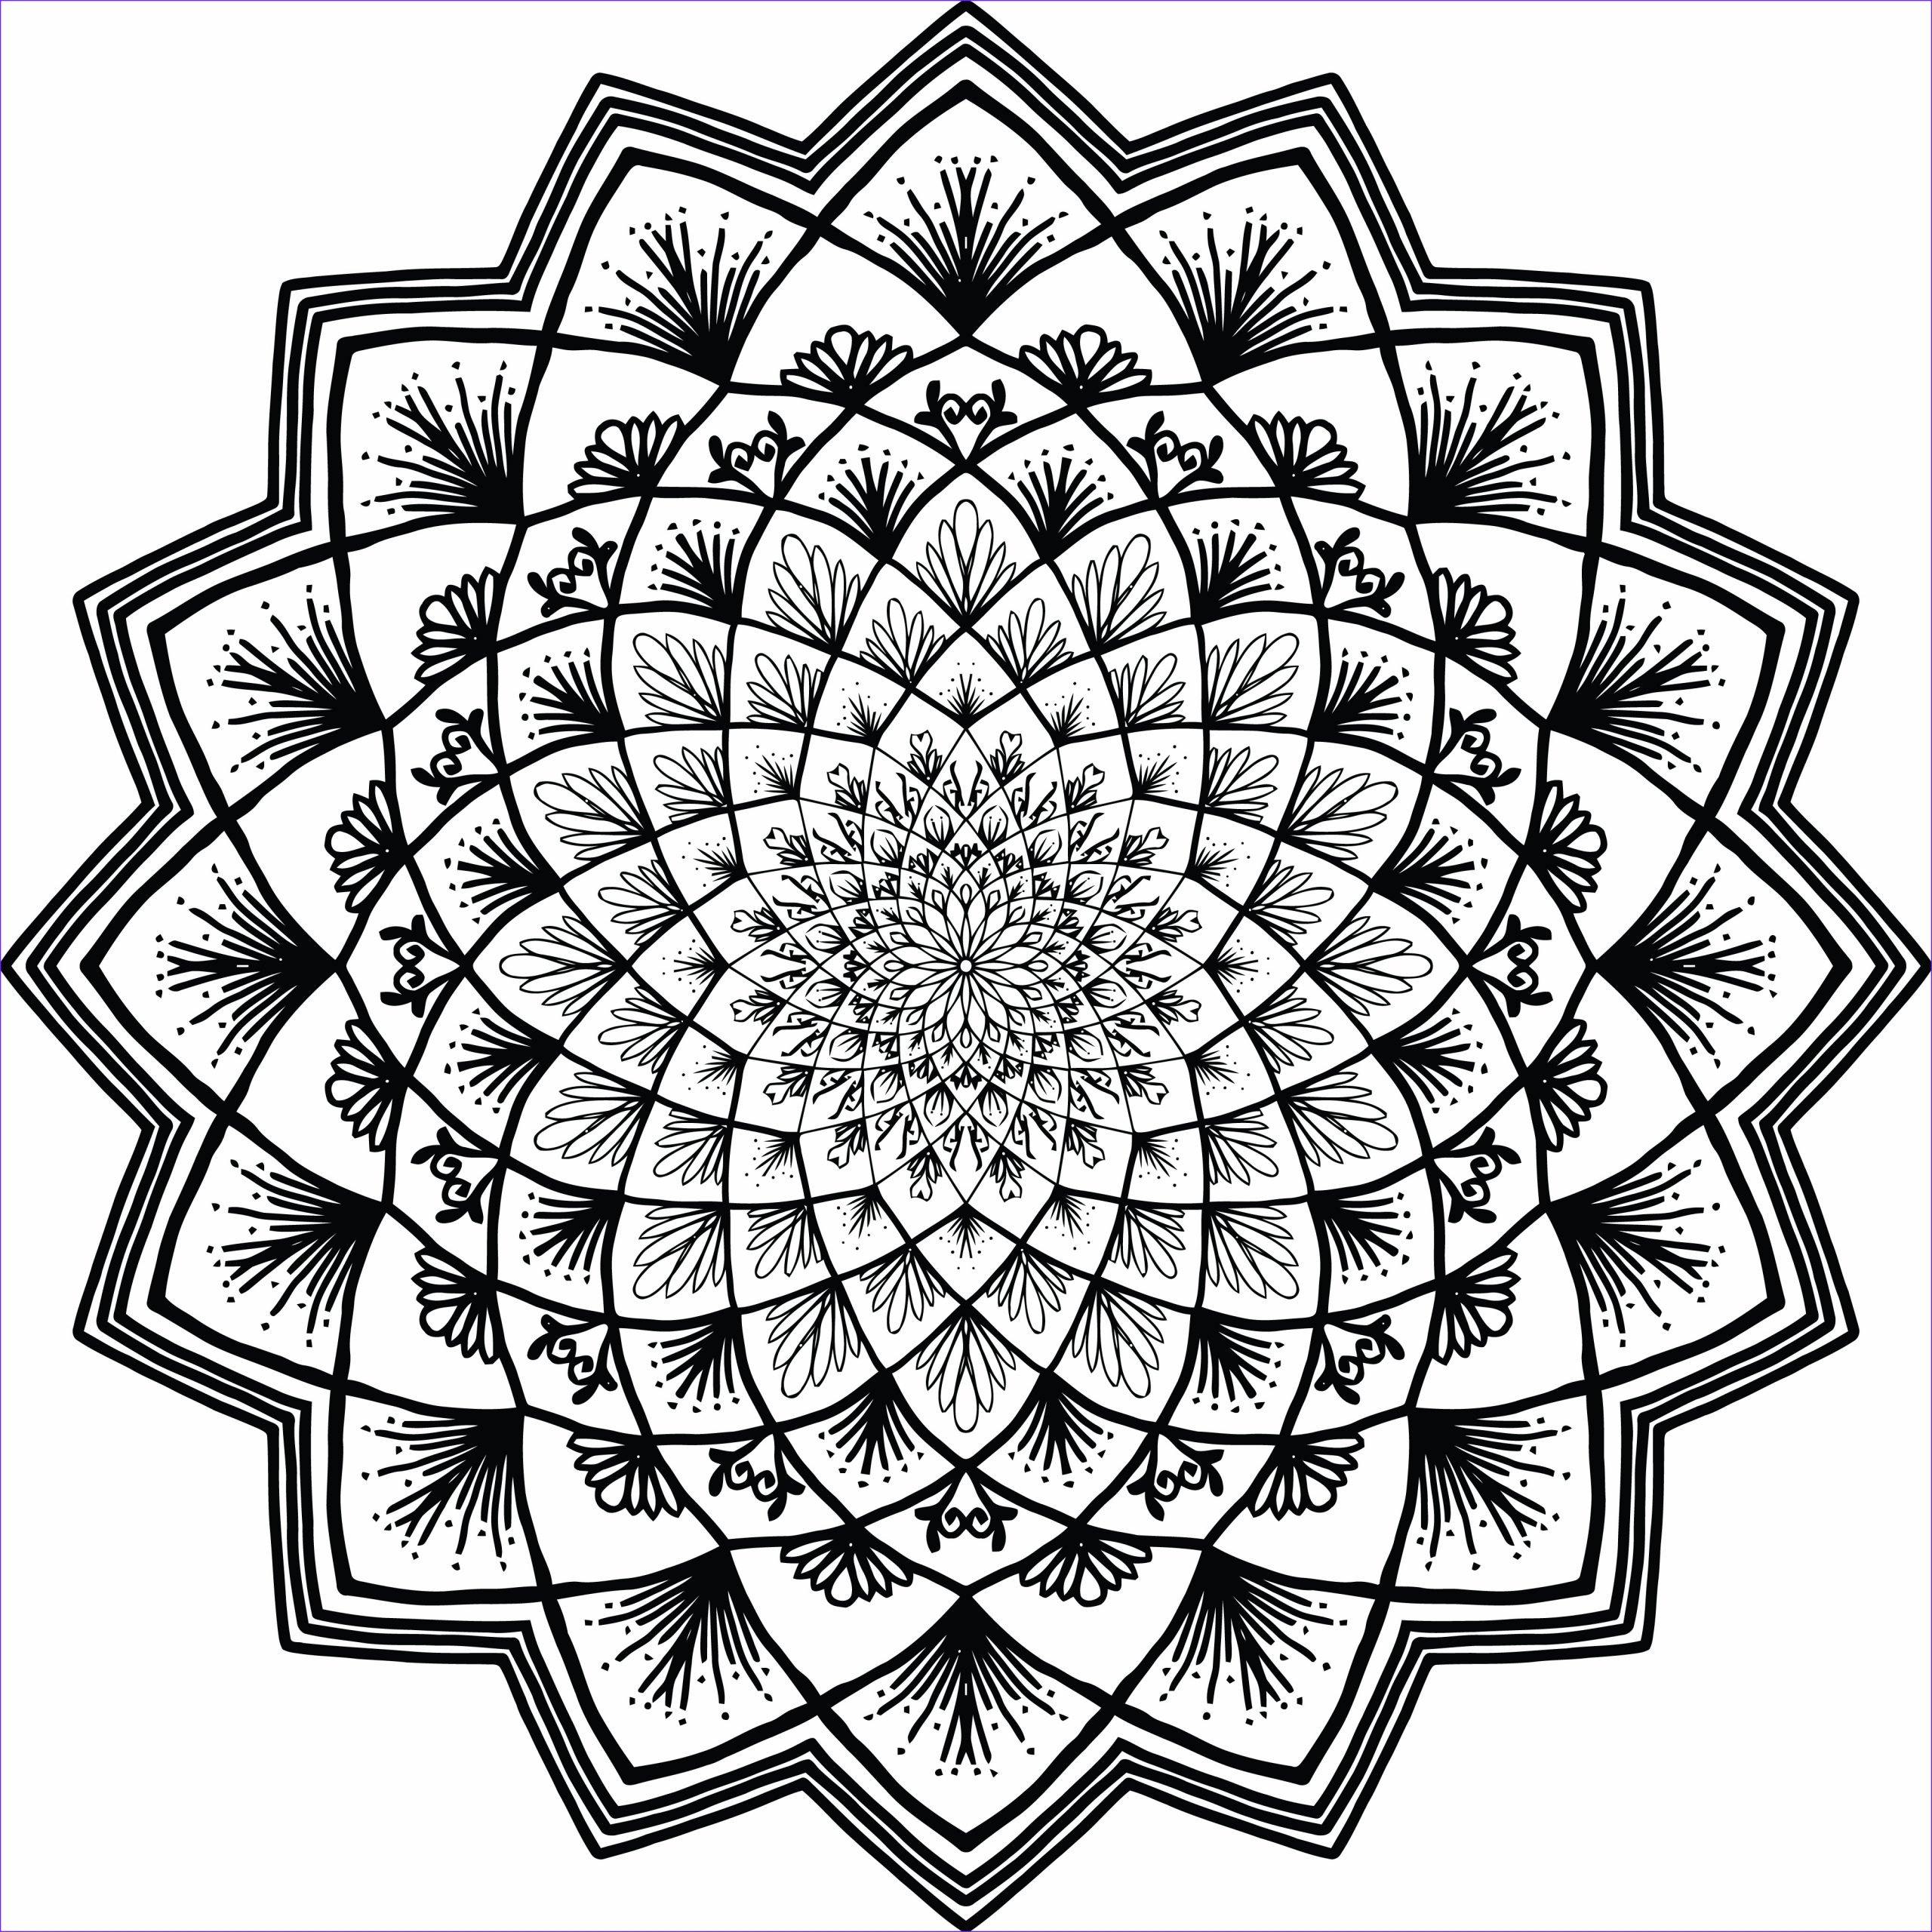 241 Free Clipart A Black And White Adult Coloring Page Floral Mandala